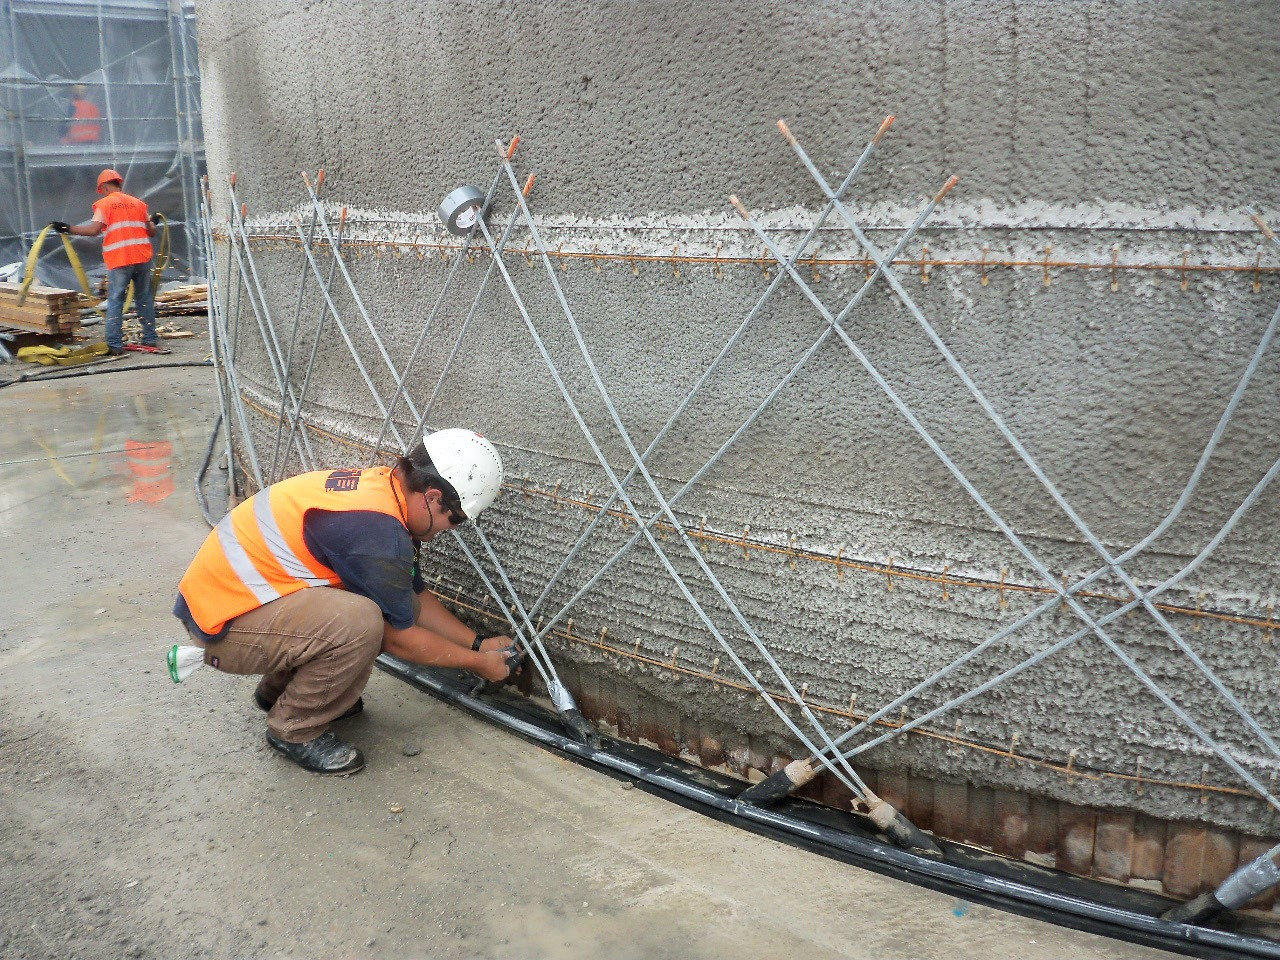 stratified chilled water storage tank built in Italy at a government facility